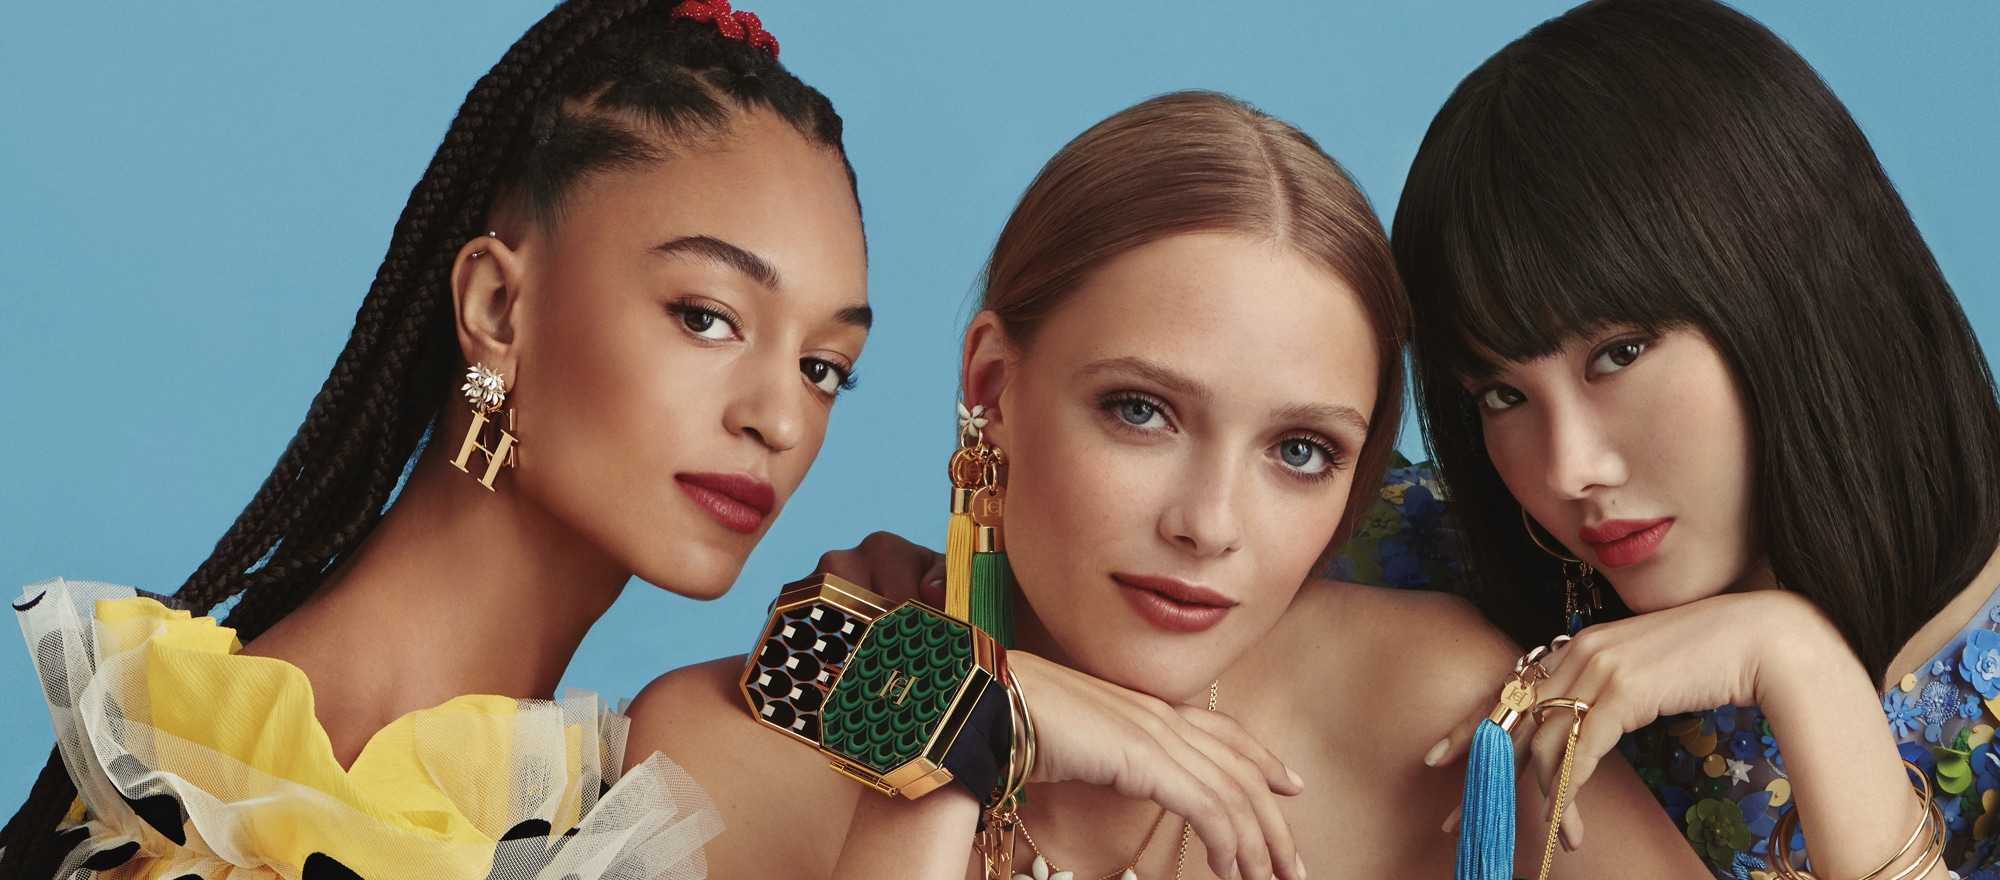 Carolina Herrera - Make Up Products So Pretty They Double as Accessories?